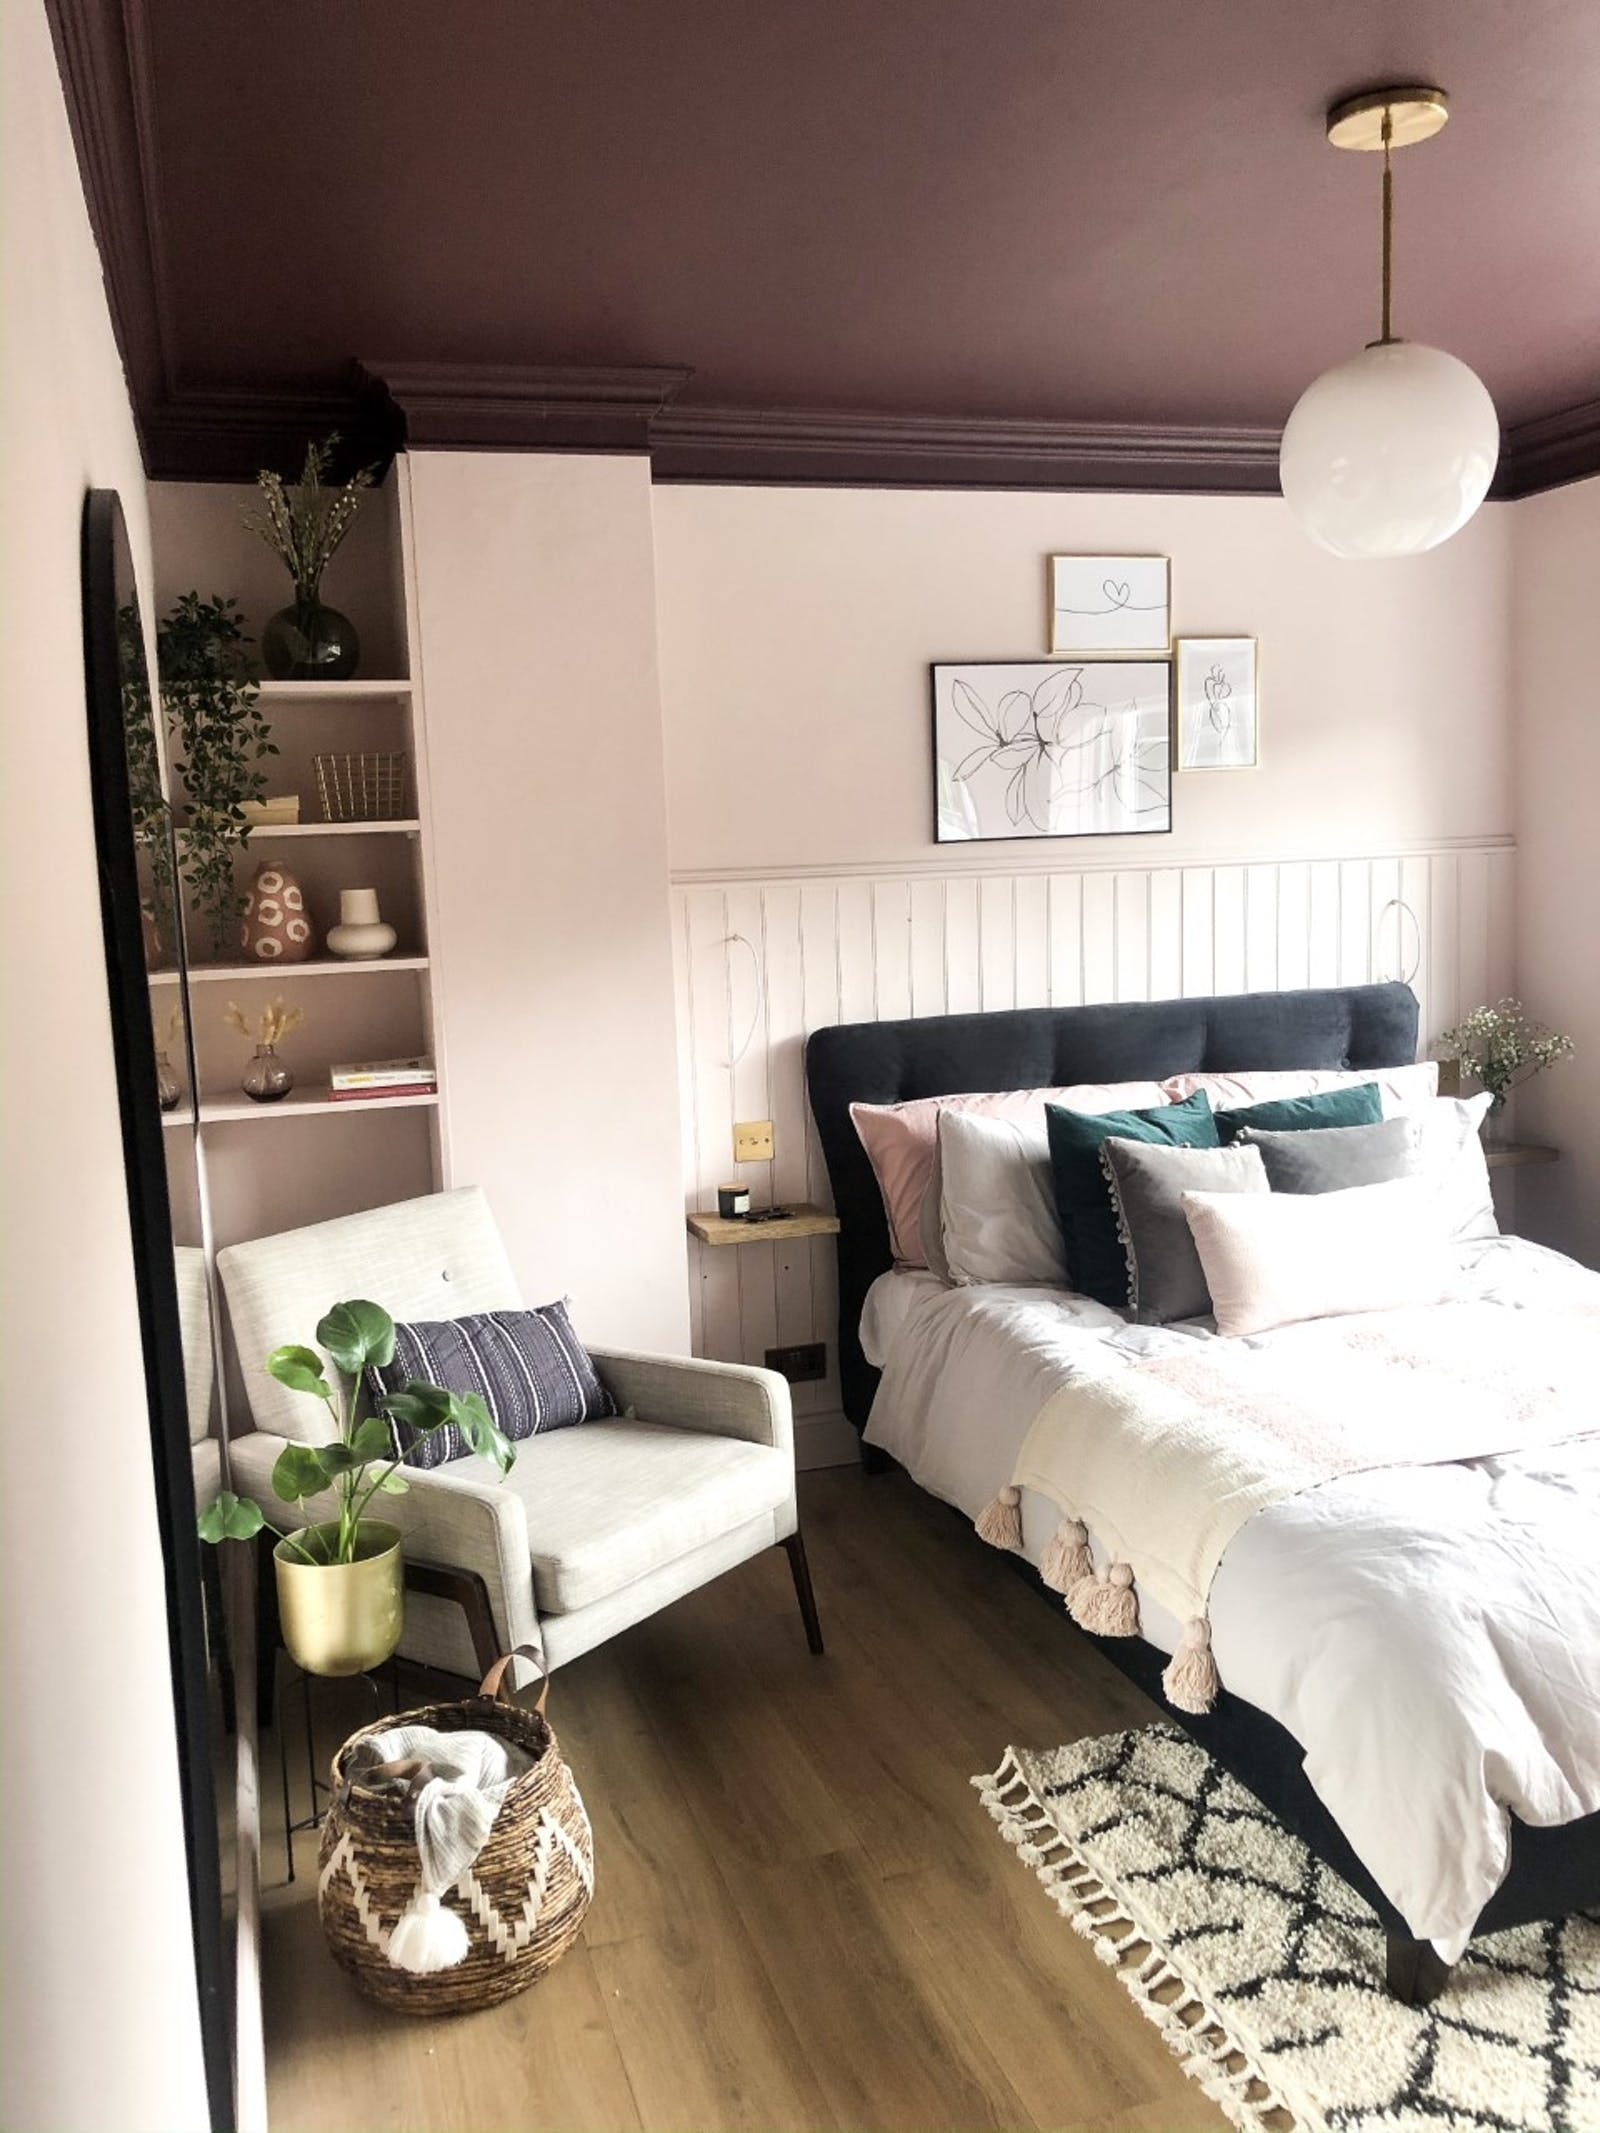 Spare bedroom painted in blush with a queen-sized bed and an armchair